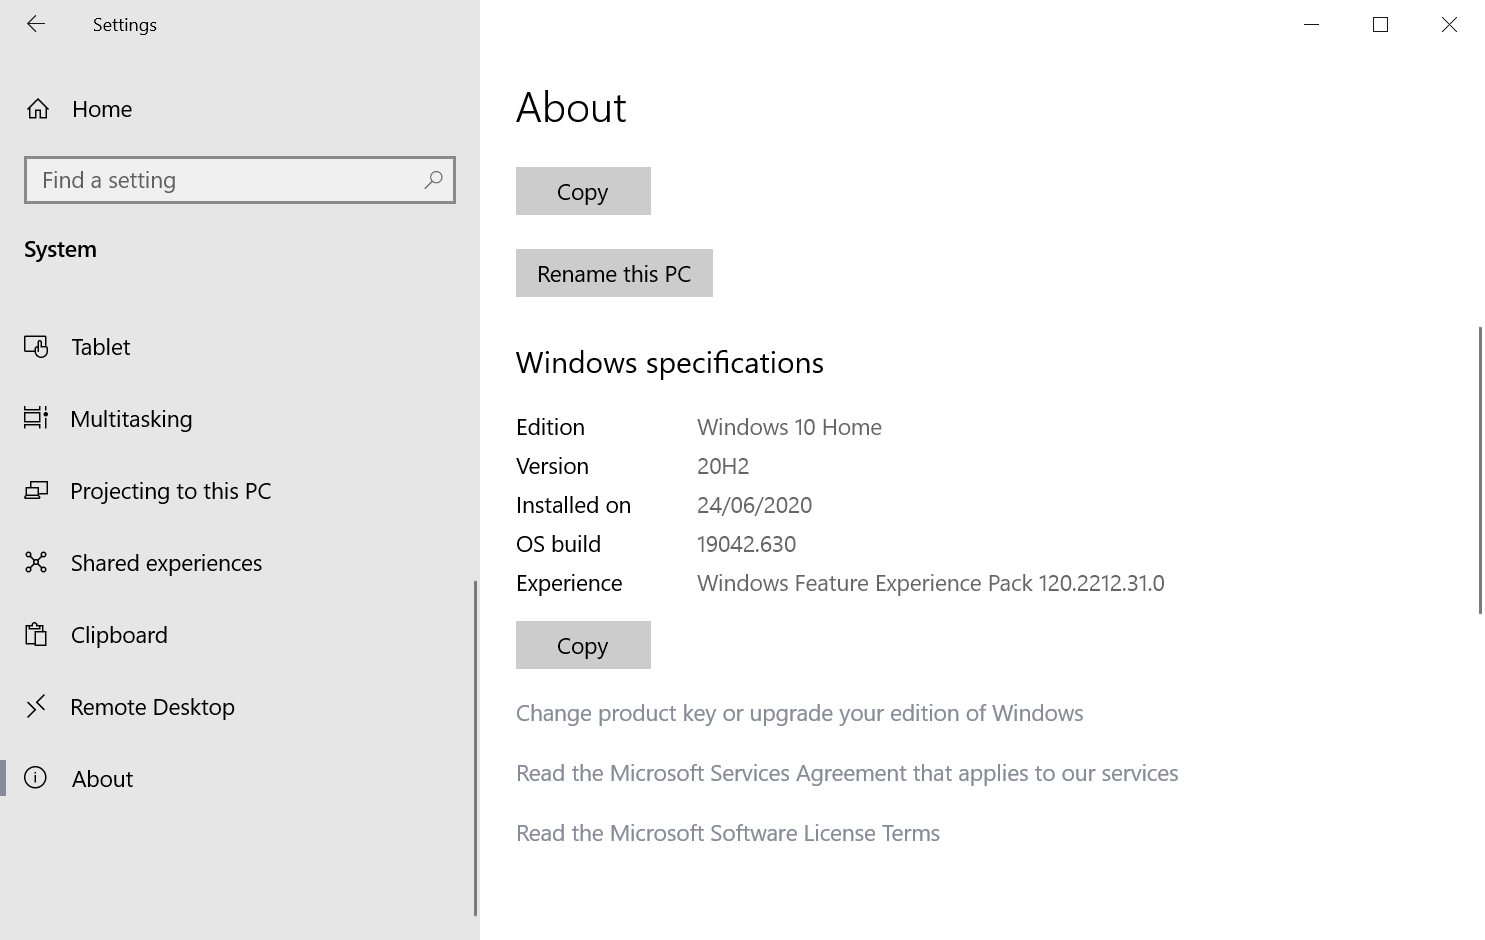 Windows Feature Experience Pack to independently unlock features on Windows 10 windows-feature-experience-pack.png